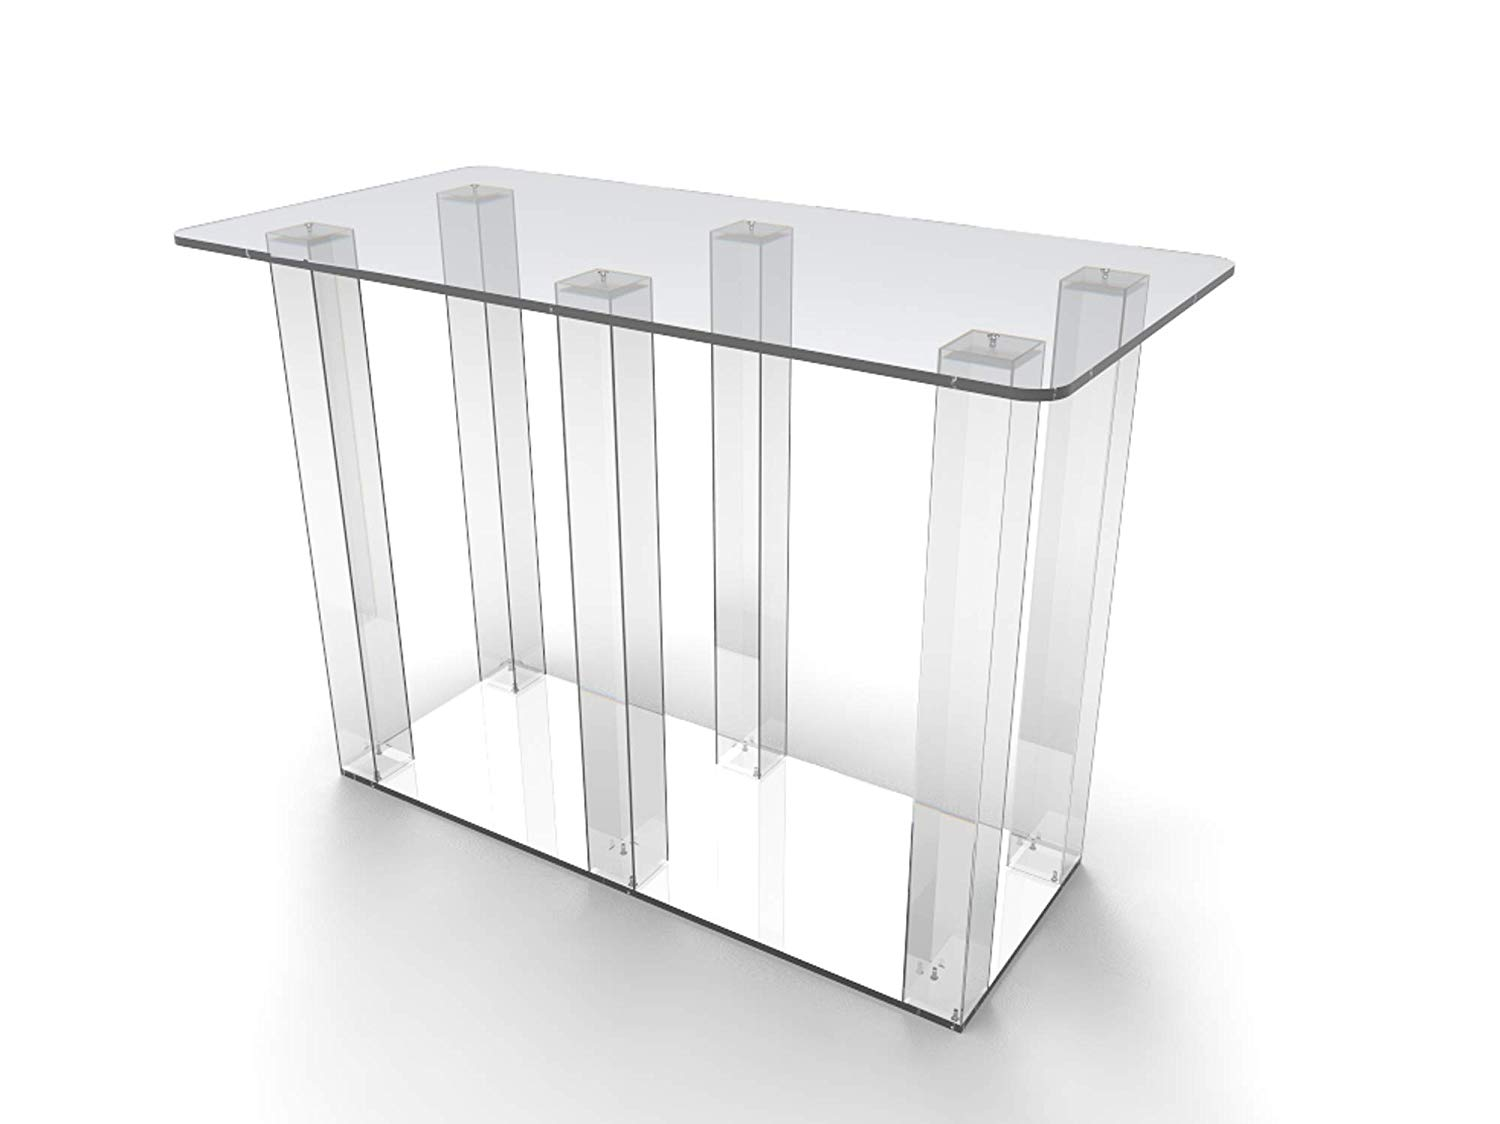 FixtureDisplays Clear Acrylic Dining Table Conference Desk Computer Desk Office Desk Workstation for Home & Office Use Glue Version 11461NEW